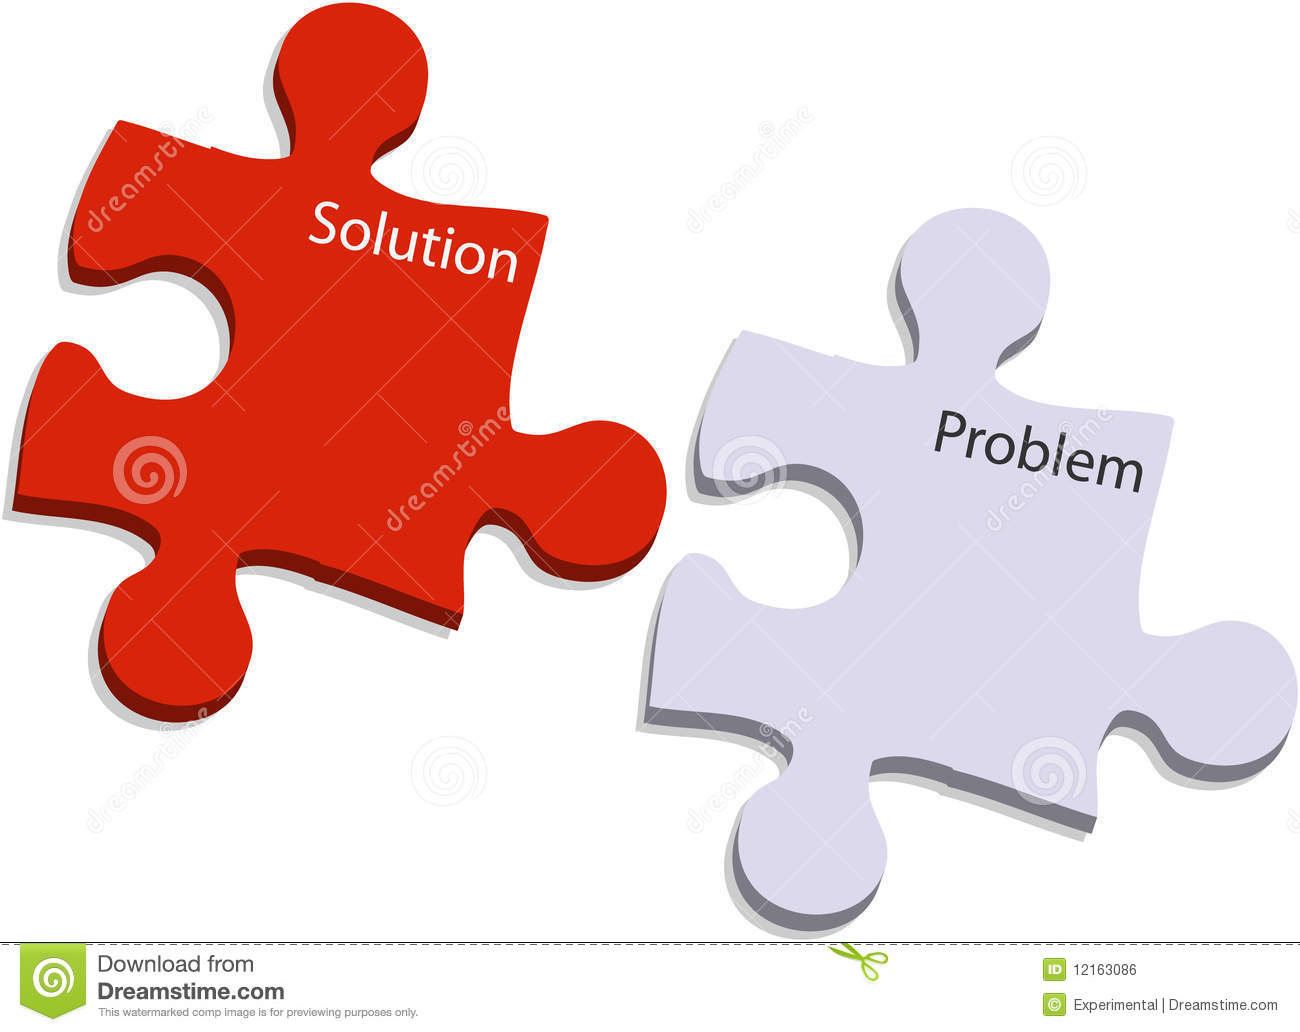 Problem And Solution Puzzle Royalty Free Stock Image - Image: 12163086